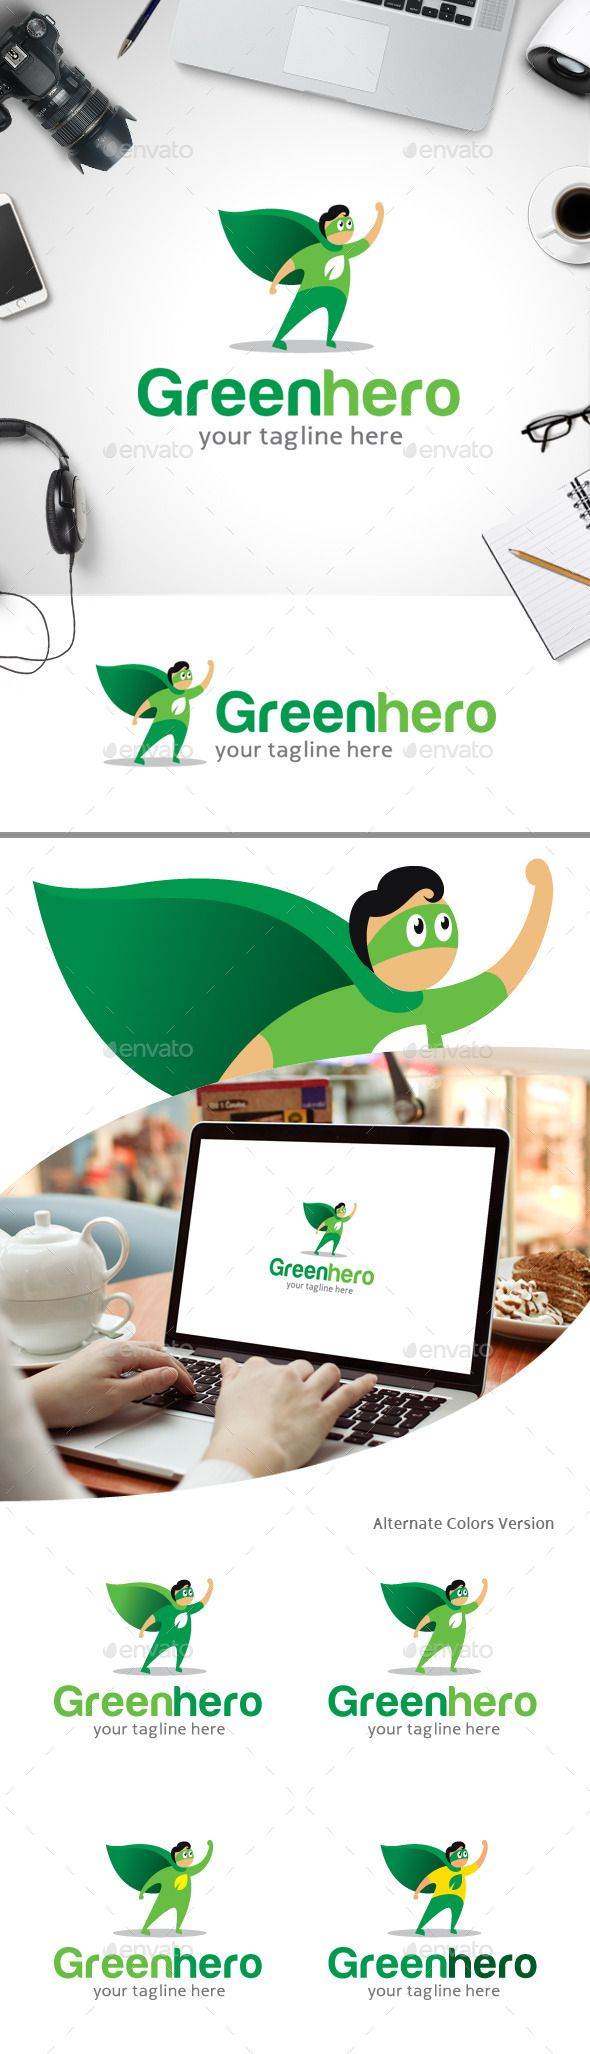 Green Hero Nature care - Logo Design Template Vector #logotype Download it here: http://graphicriver.net/item/green-hero-logo-nature-care/11247374?s_rank=947?ref=nexion